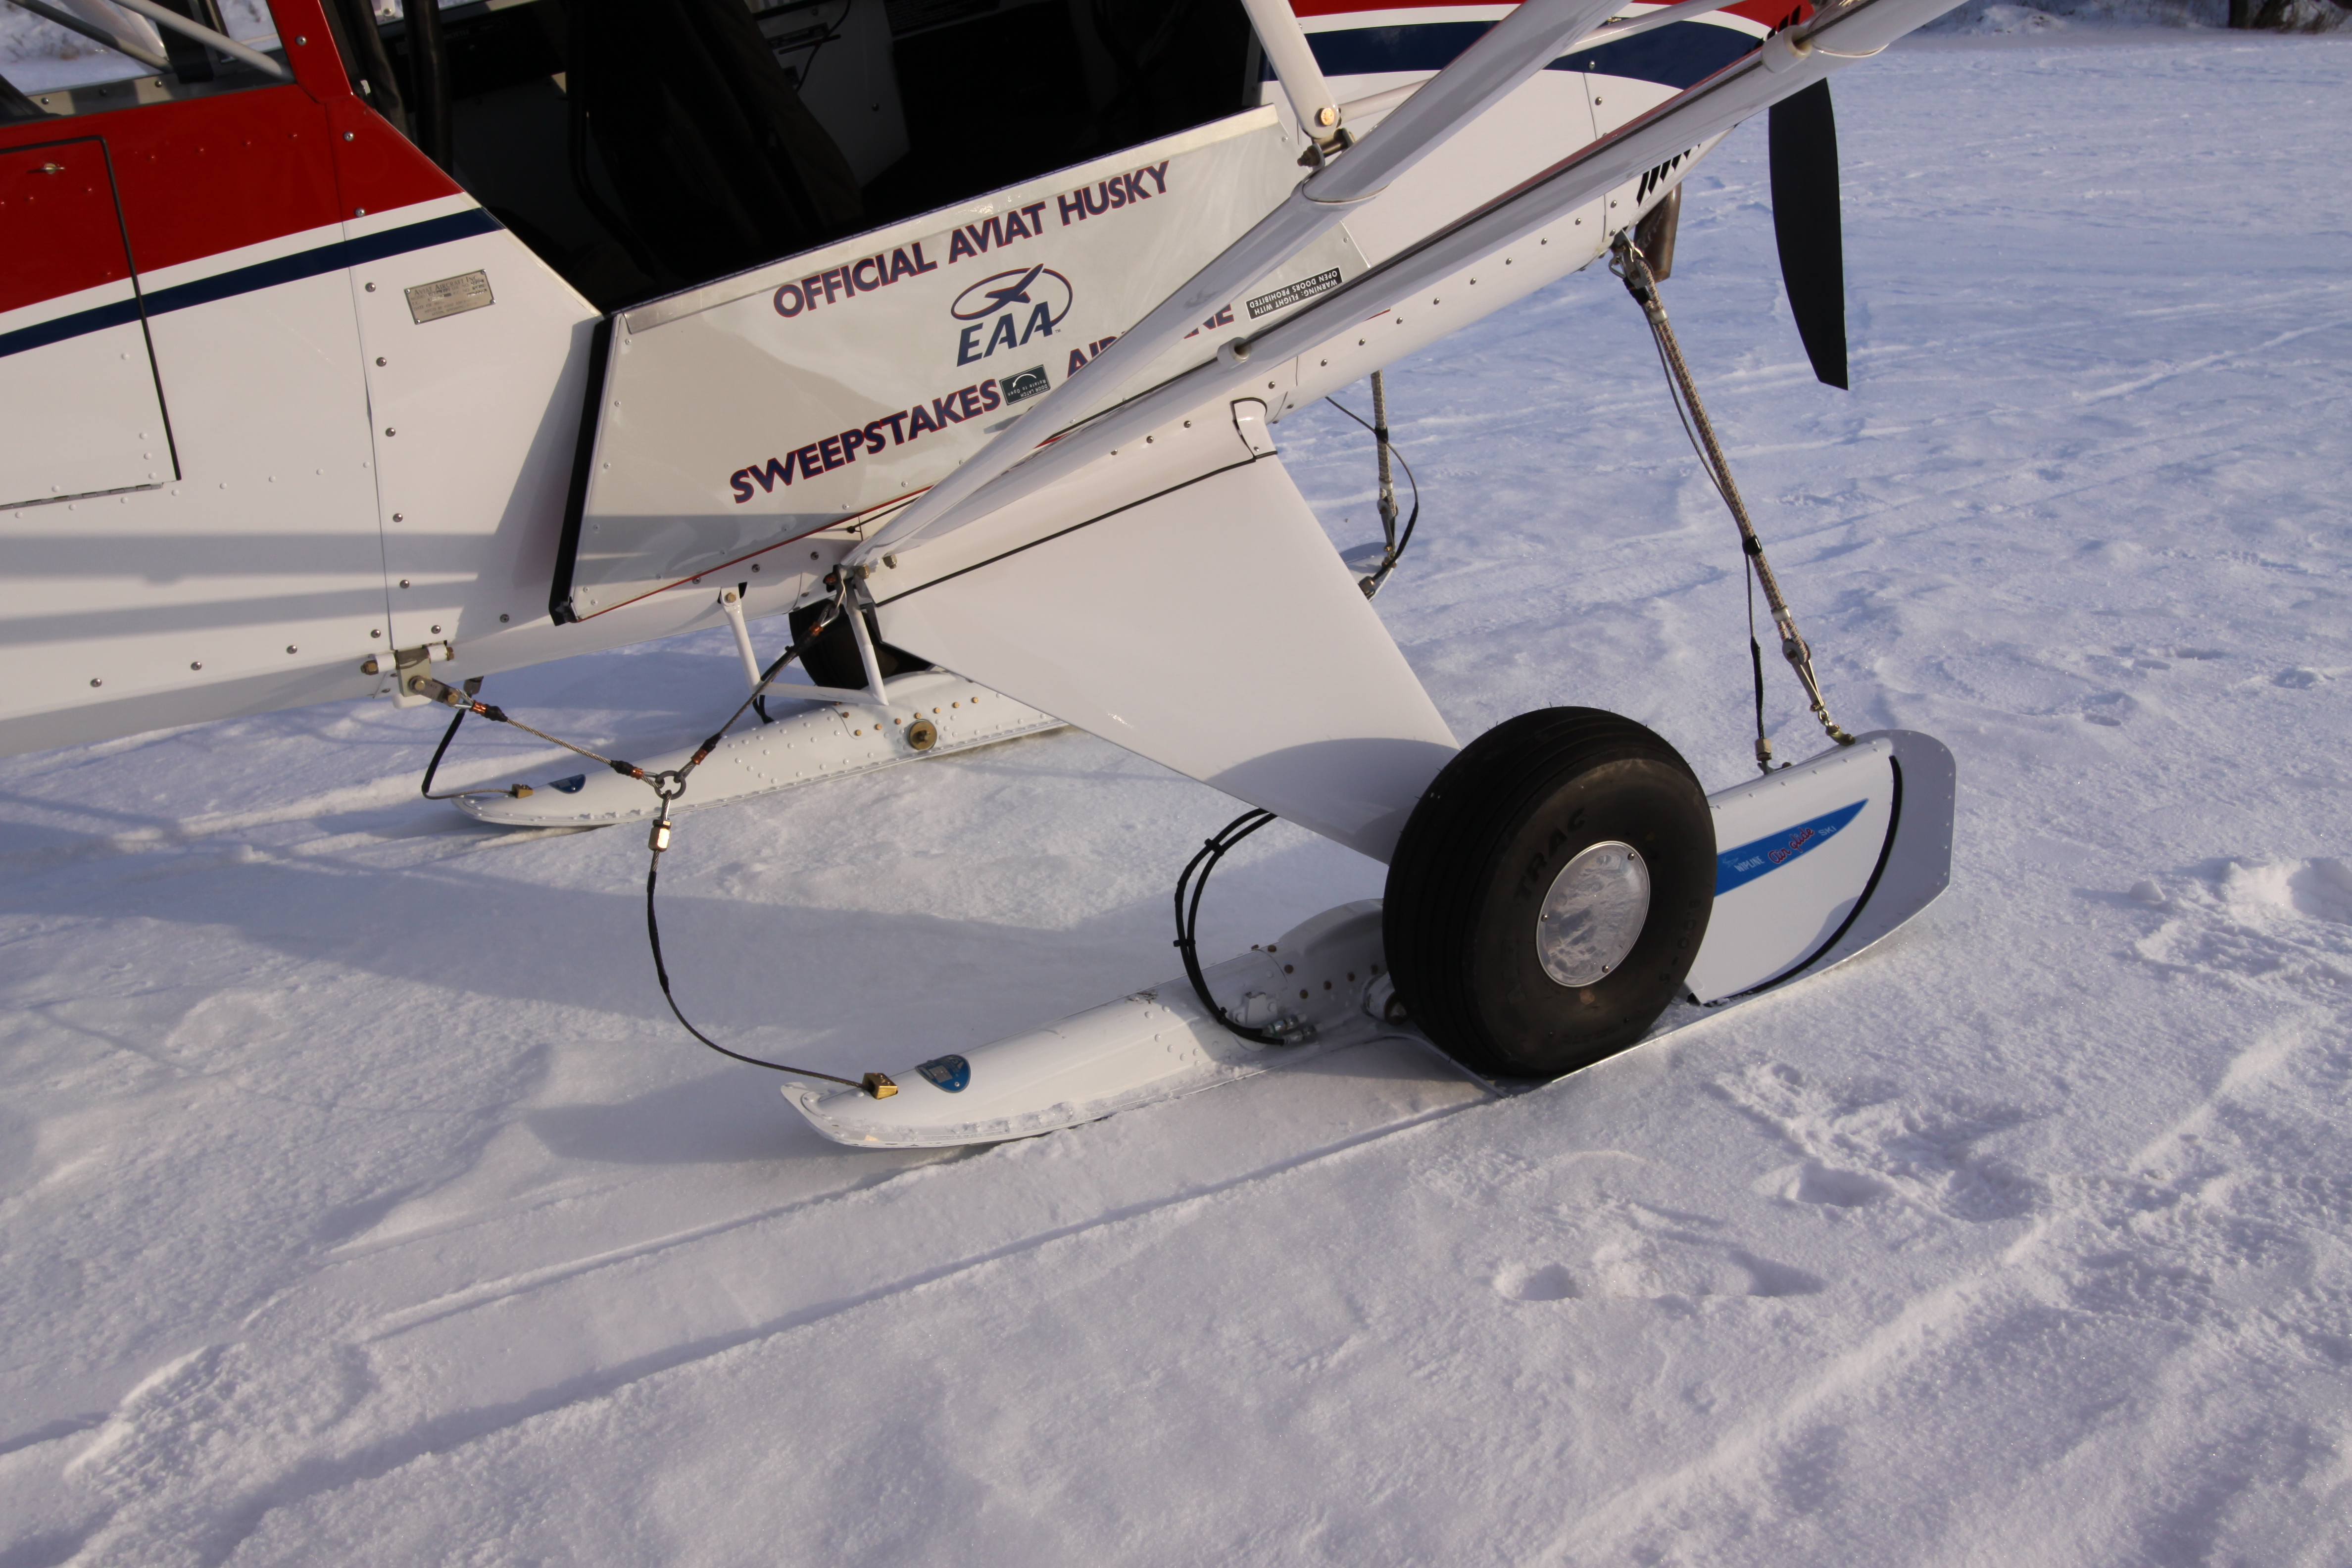 C2200 AirGlide Skis on an Aviat Husky